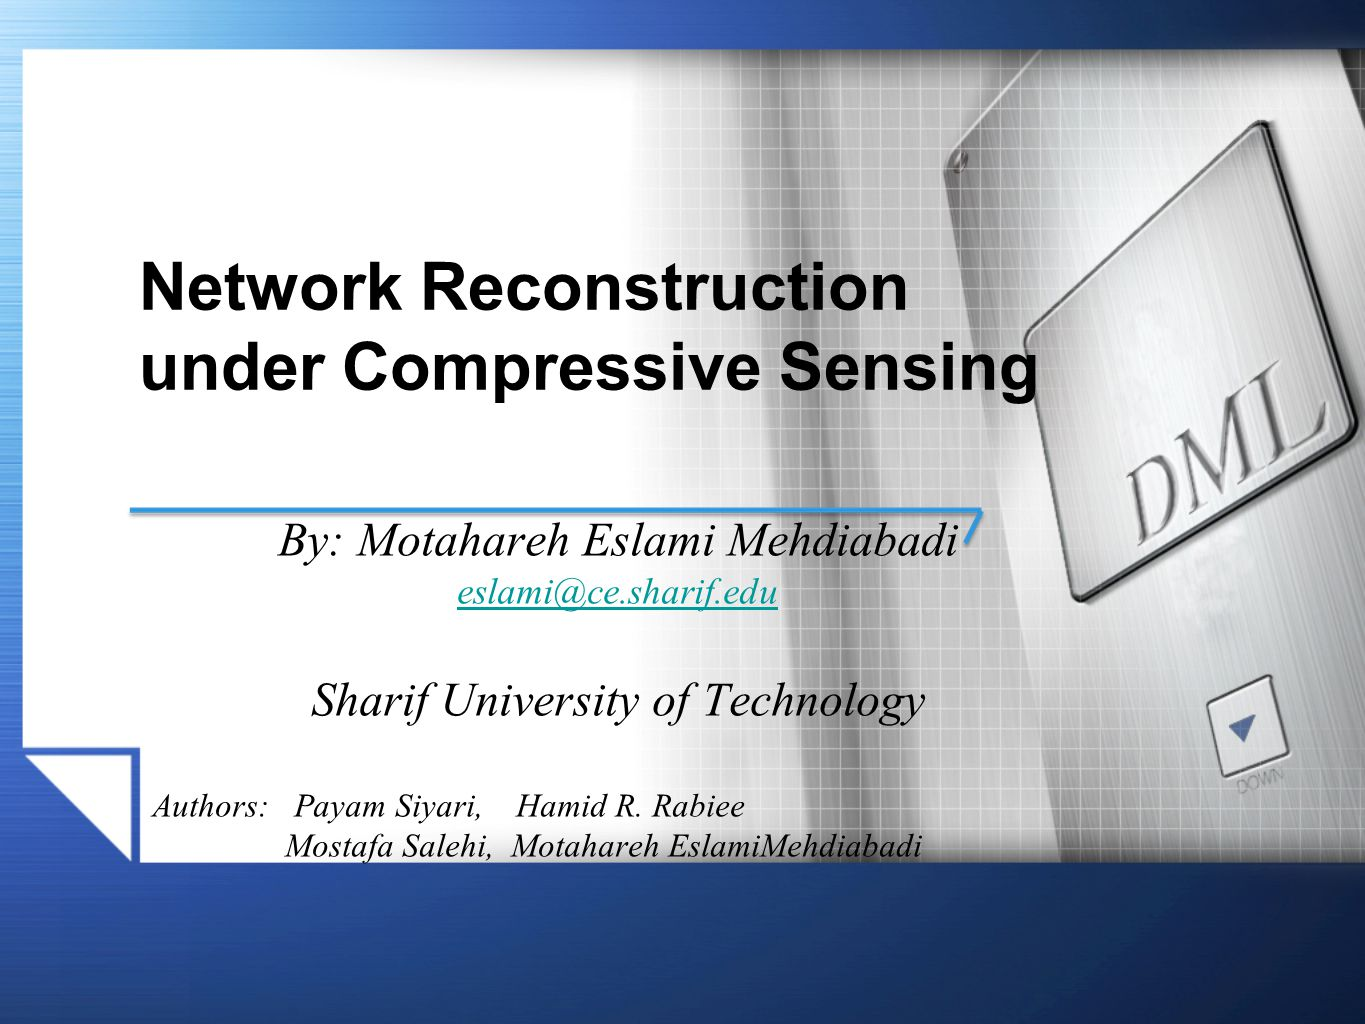 Network Reconstruction under Compressive Sensing